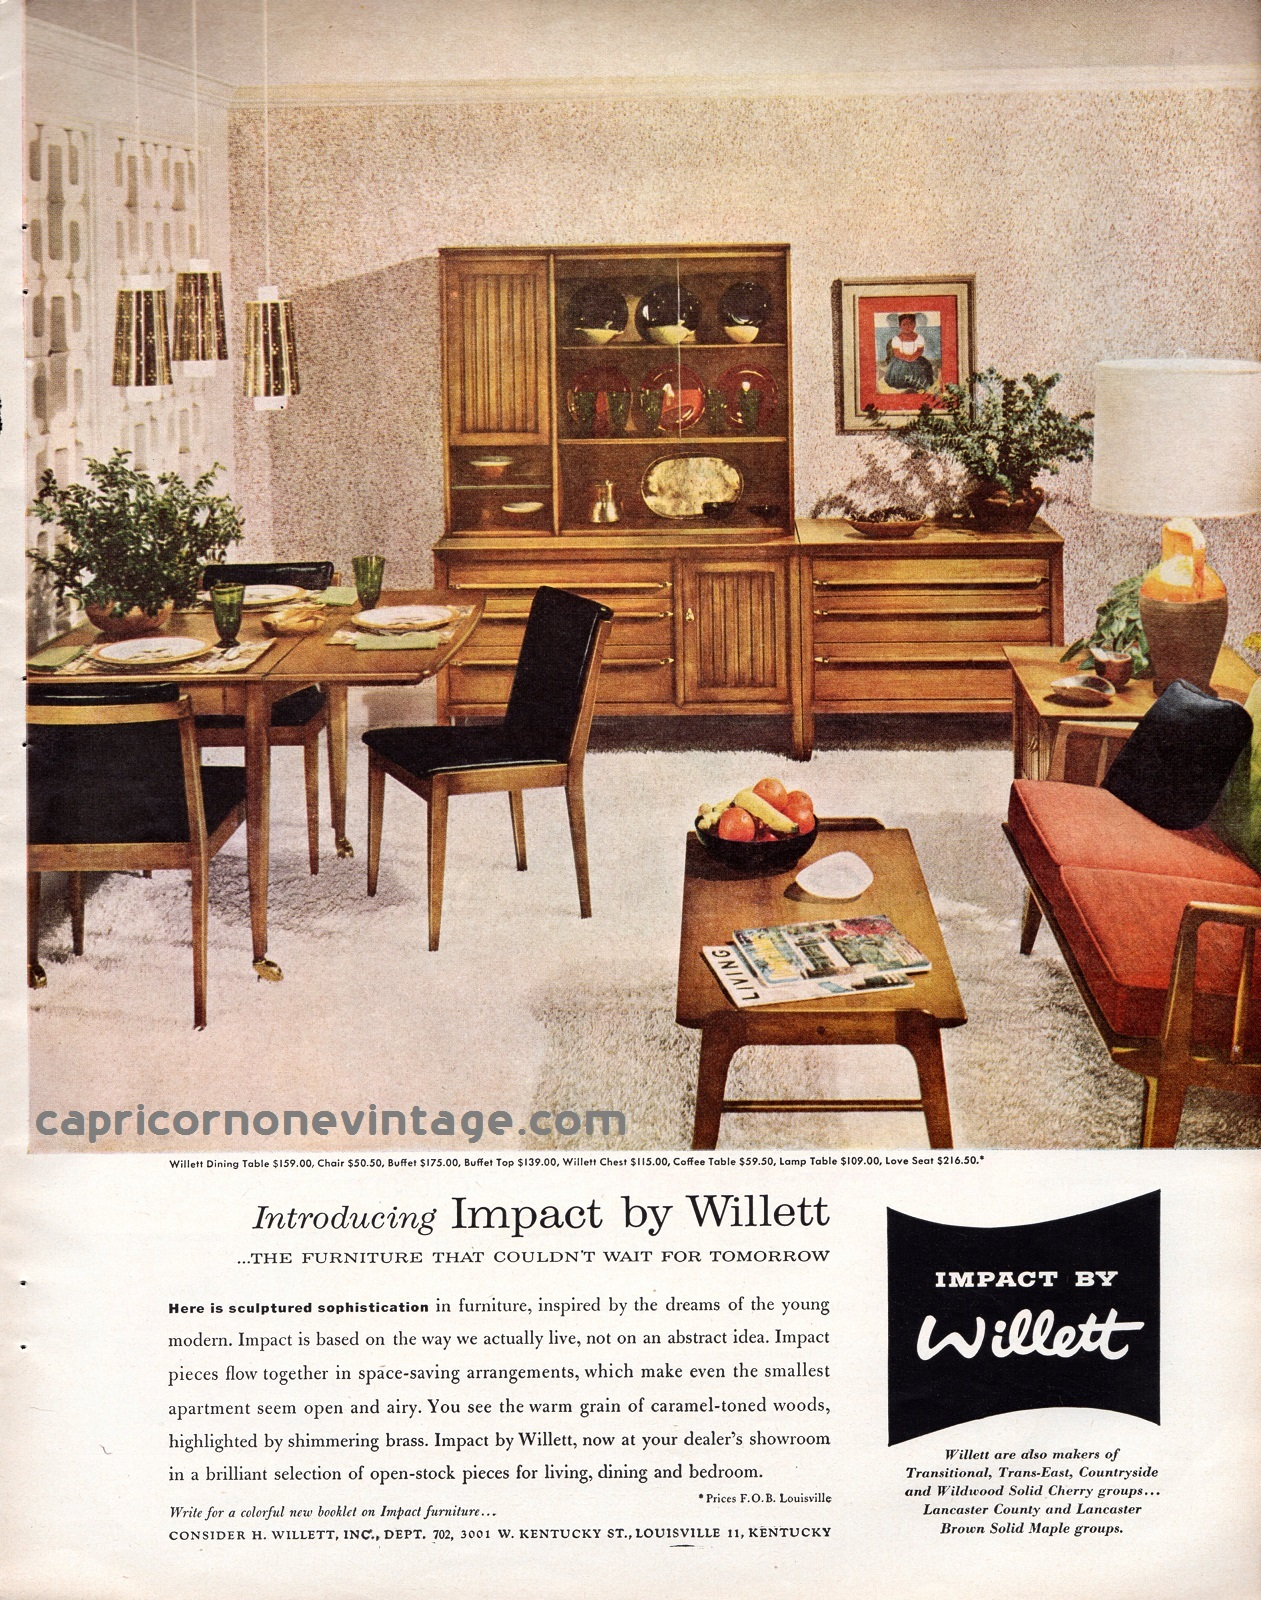 Superb 1957 Impact By Willett Furniture Magazine Ad Mid Century Modern Furnishings  Retro Room Decor 1950s Vintage Advertising